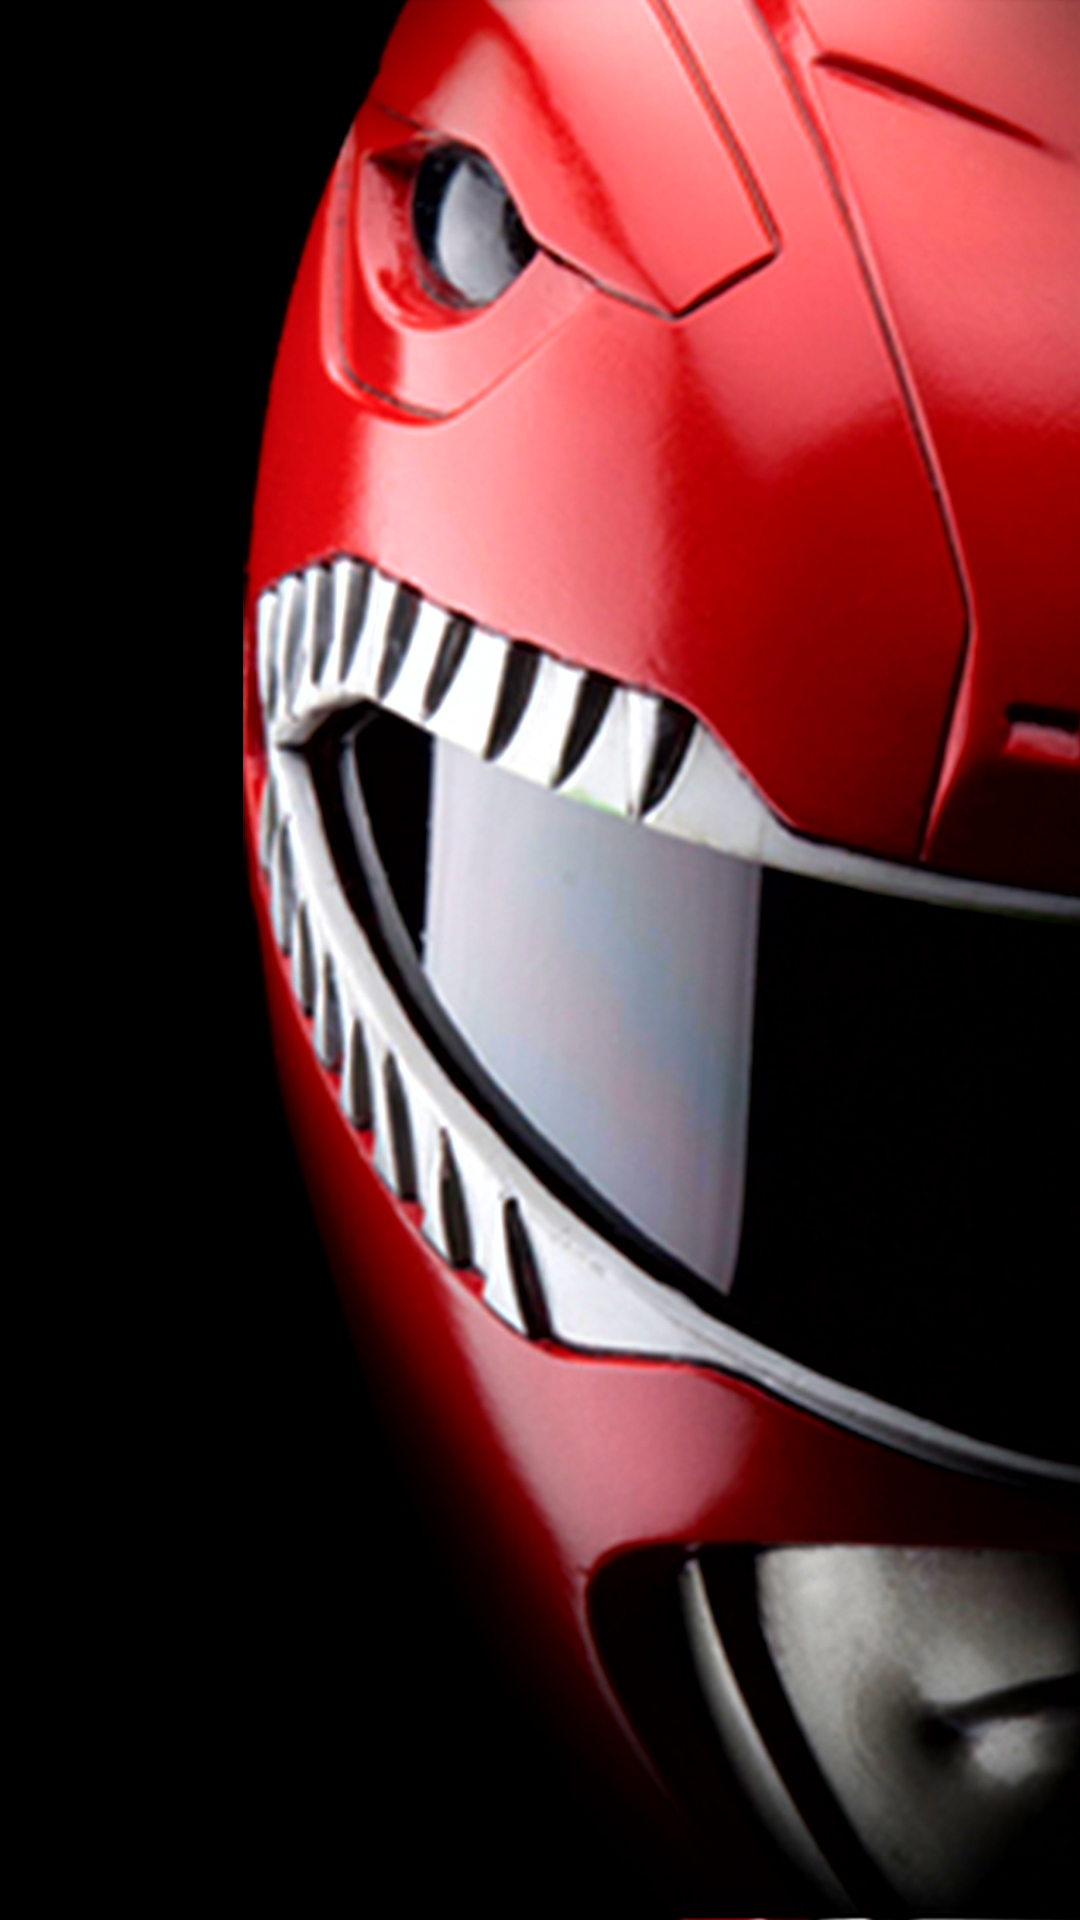 Power Rangers 1080 X 1920 FHD Wallpaper